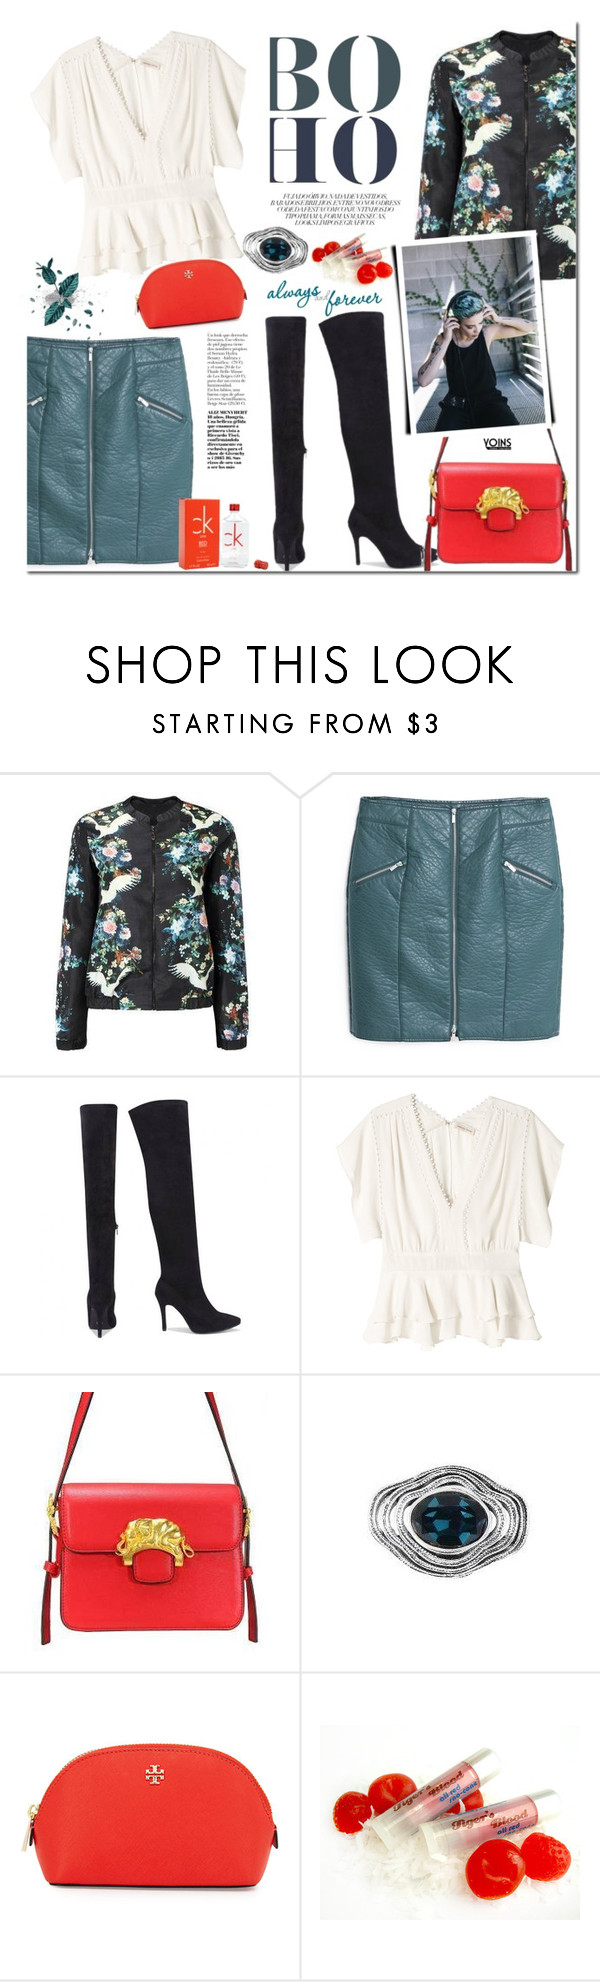 """""""Yoins.com"""" by mada-malureanu ❤ liked on Polyvore featuring MANGO, Rebecca Taylor, Tory Burch, Calvin Klein, vintage, women's clothing, women, female, woman and misses"""